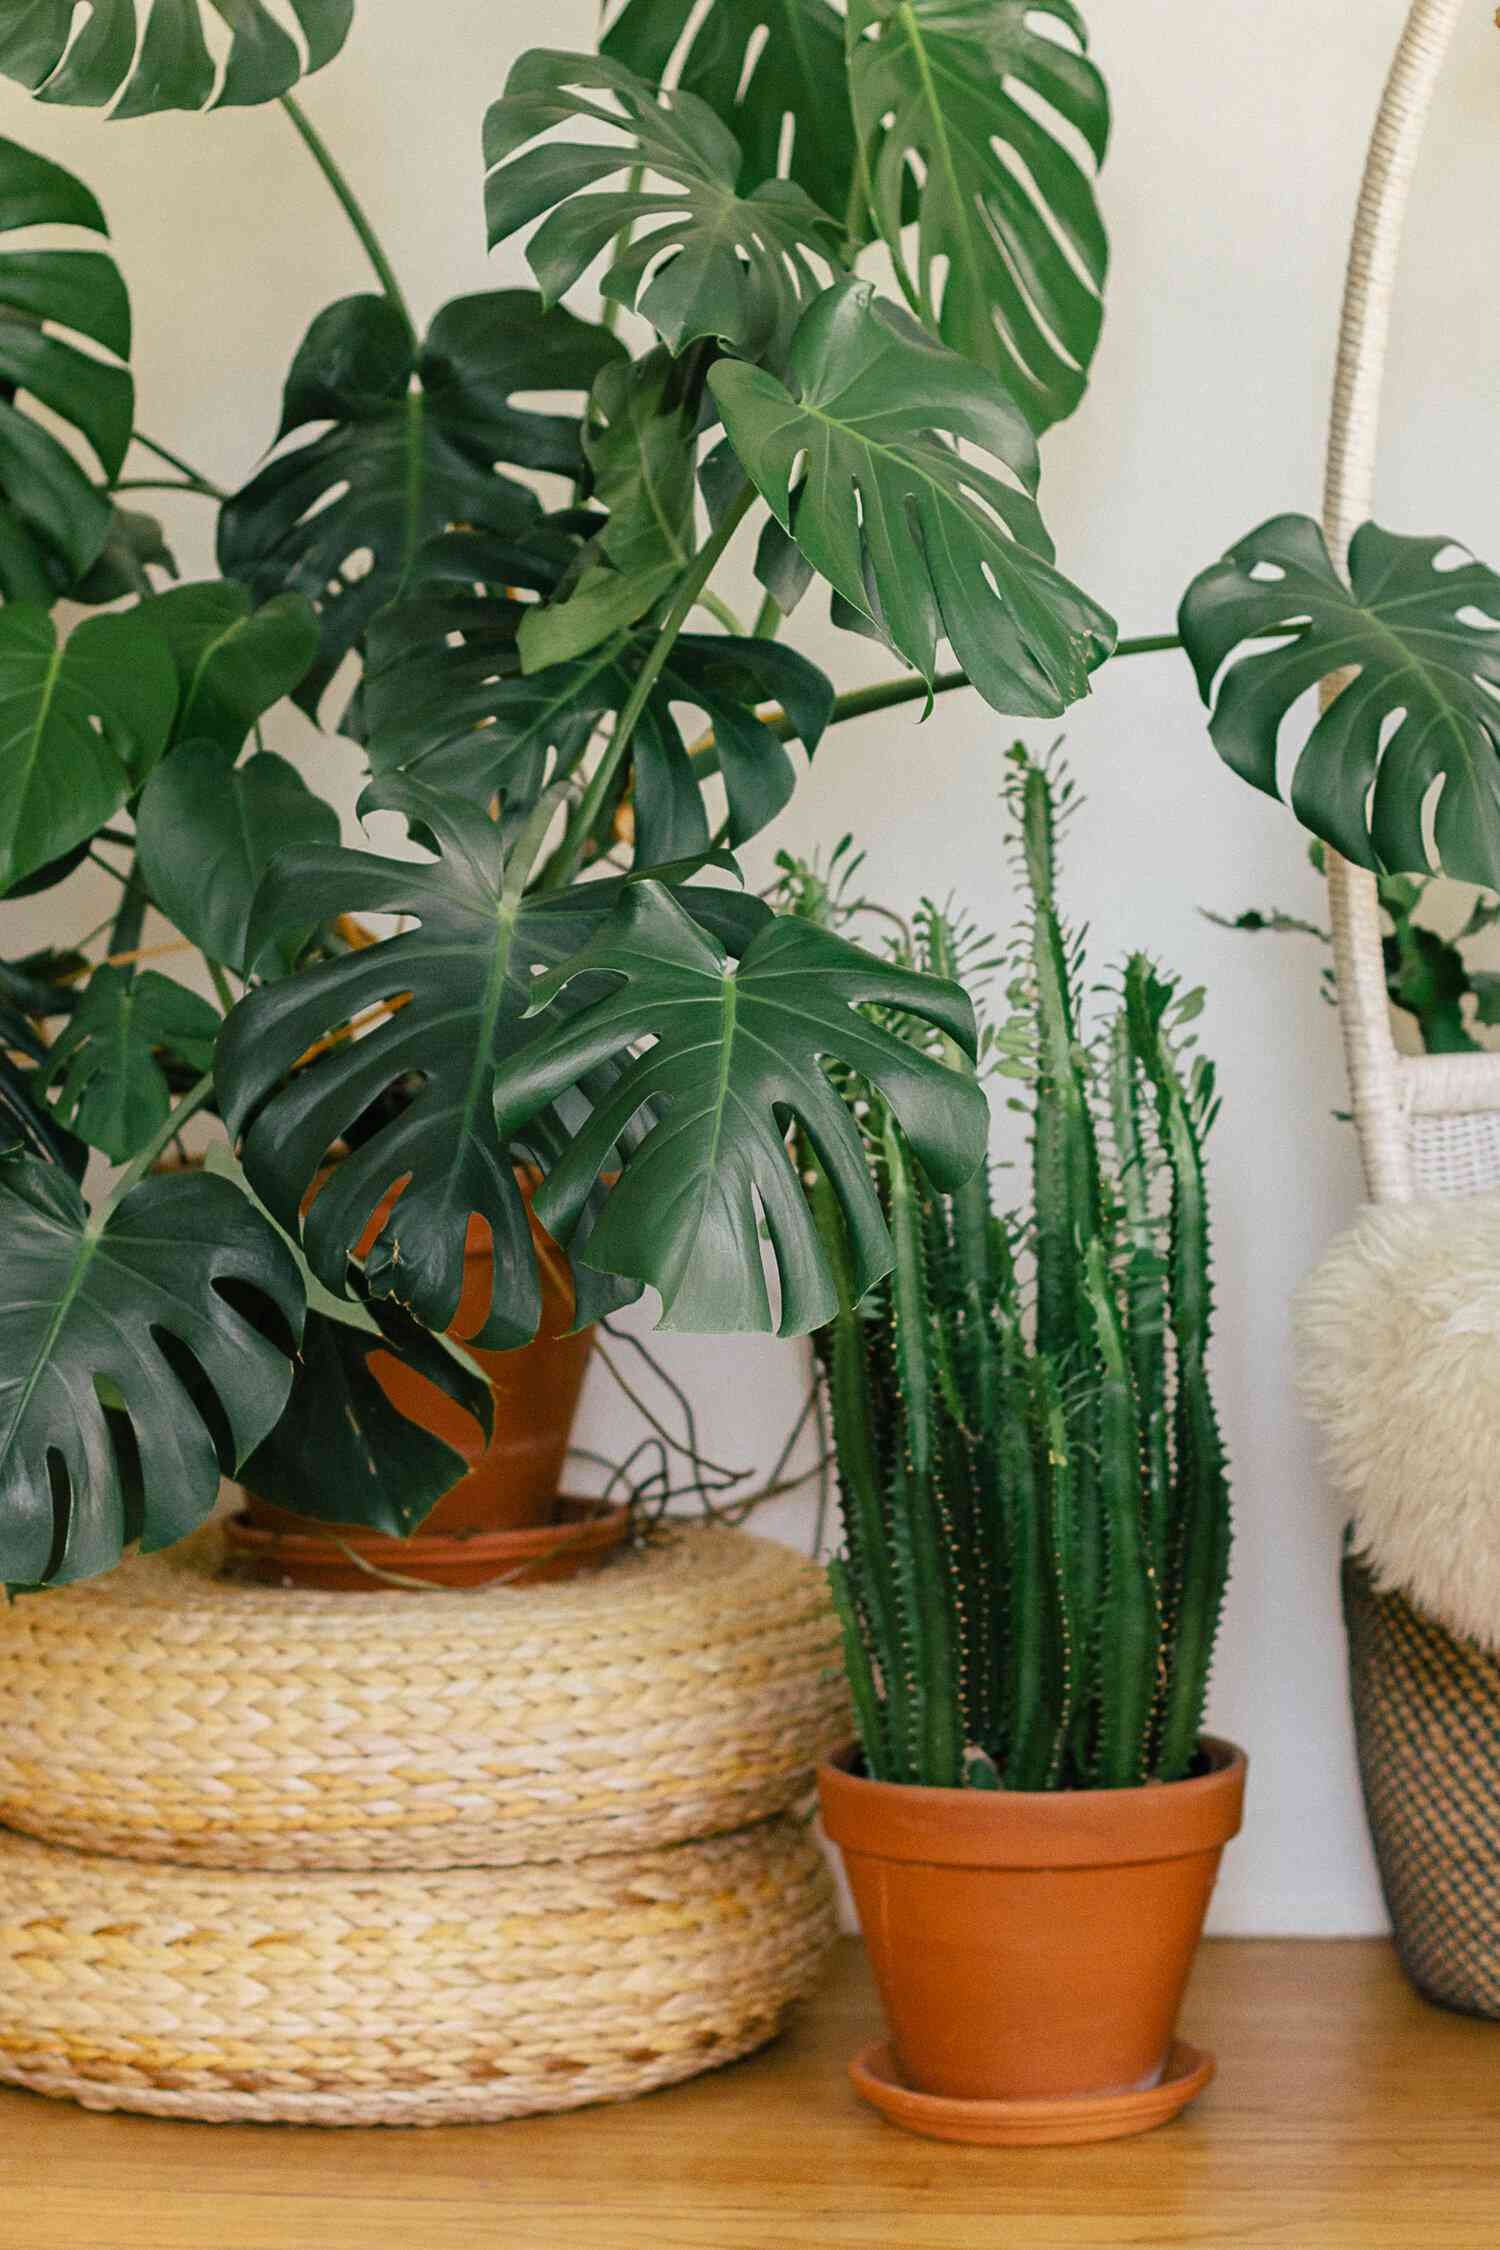 Up close of a Monstera plant next to an African milk plant.